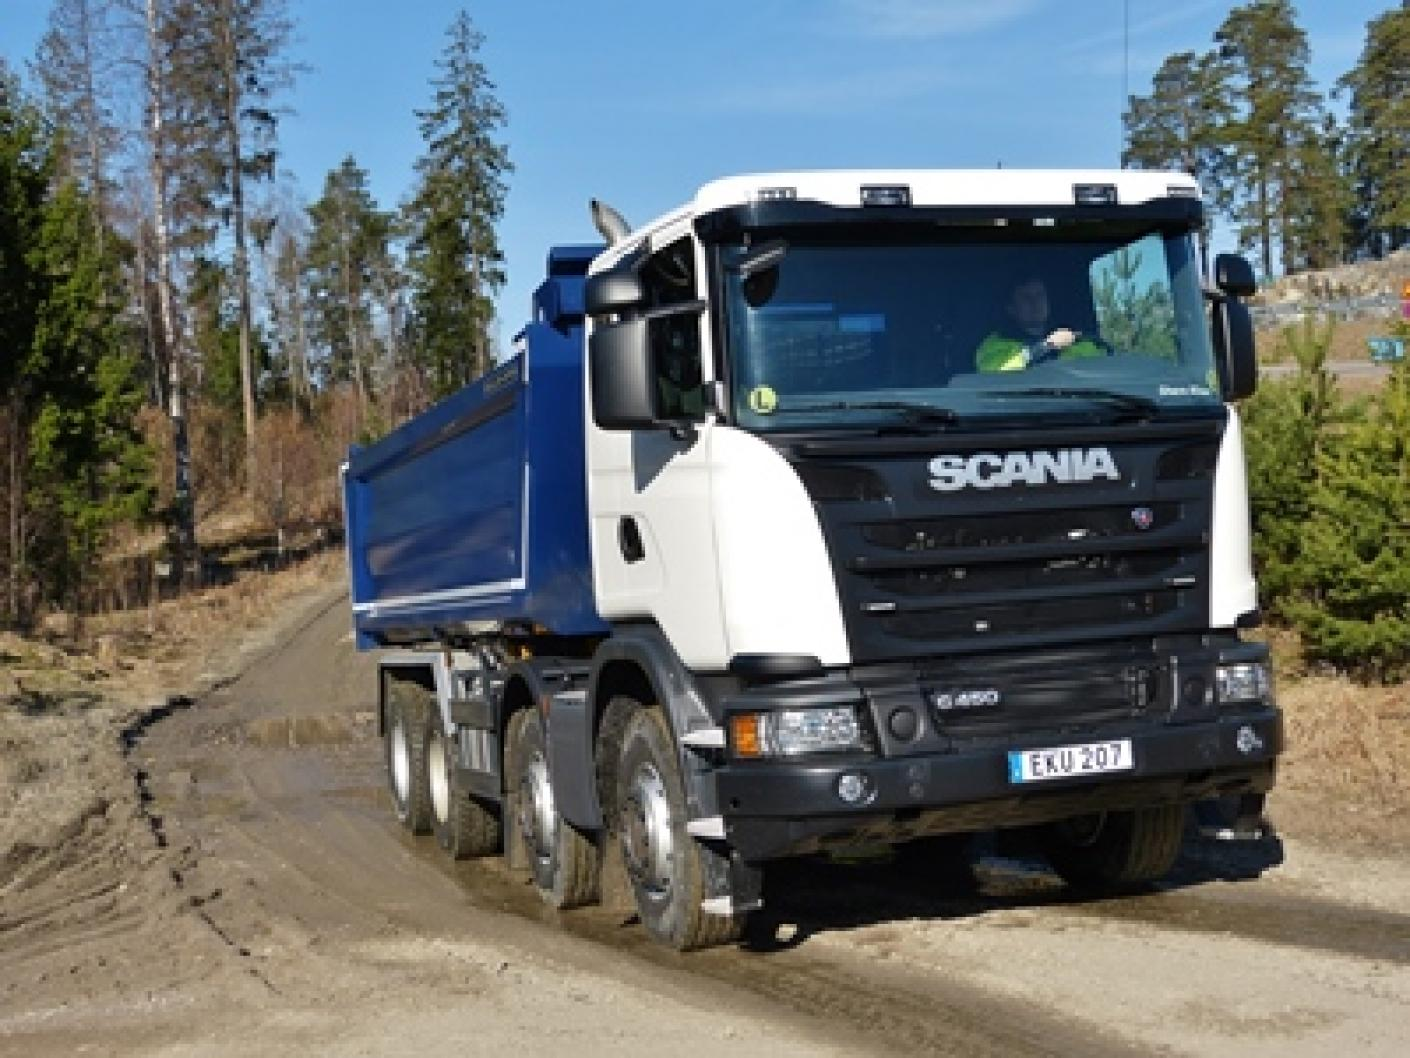 Shifting opinions - Scania's Opticruise | Commercial Motor